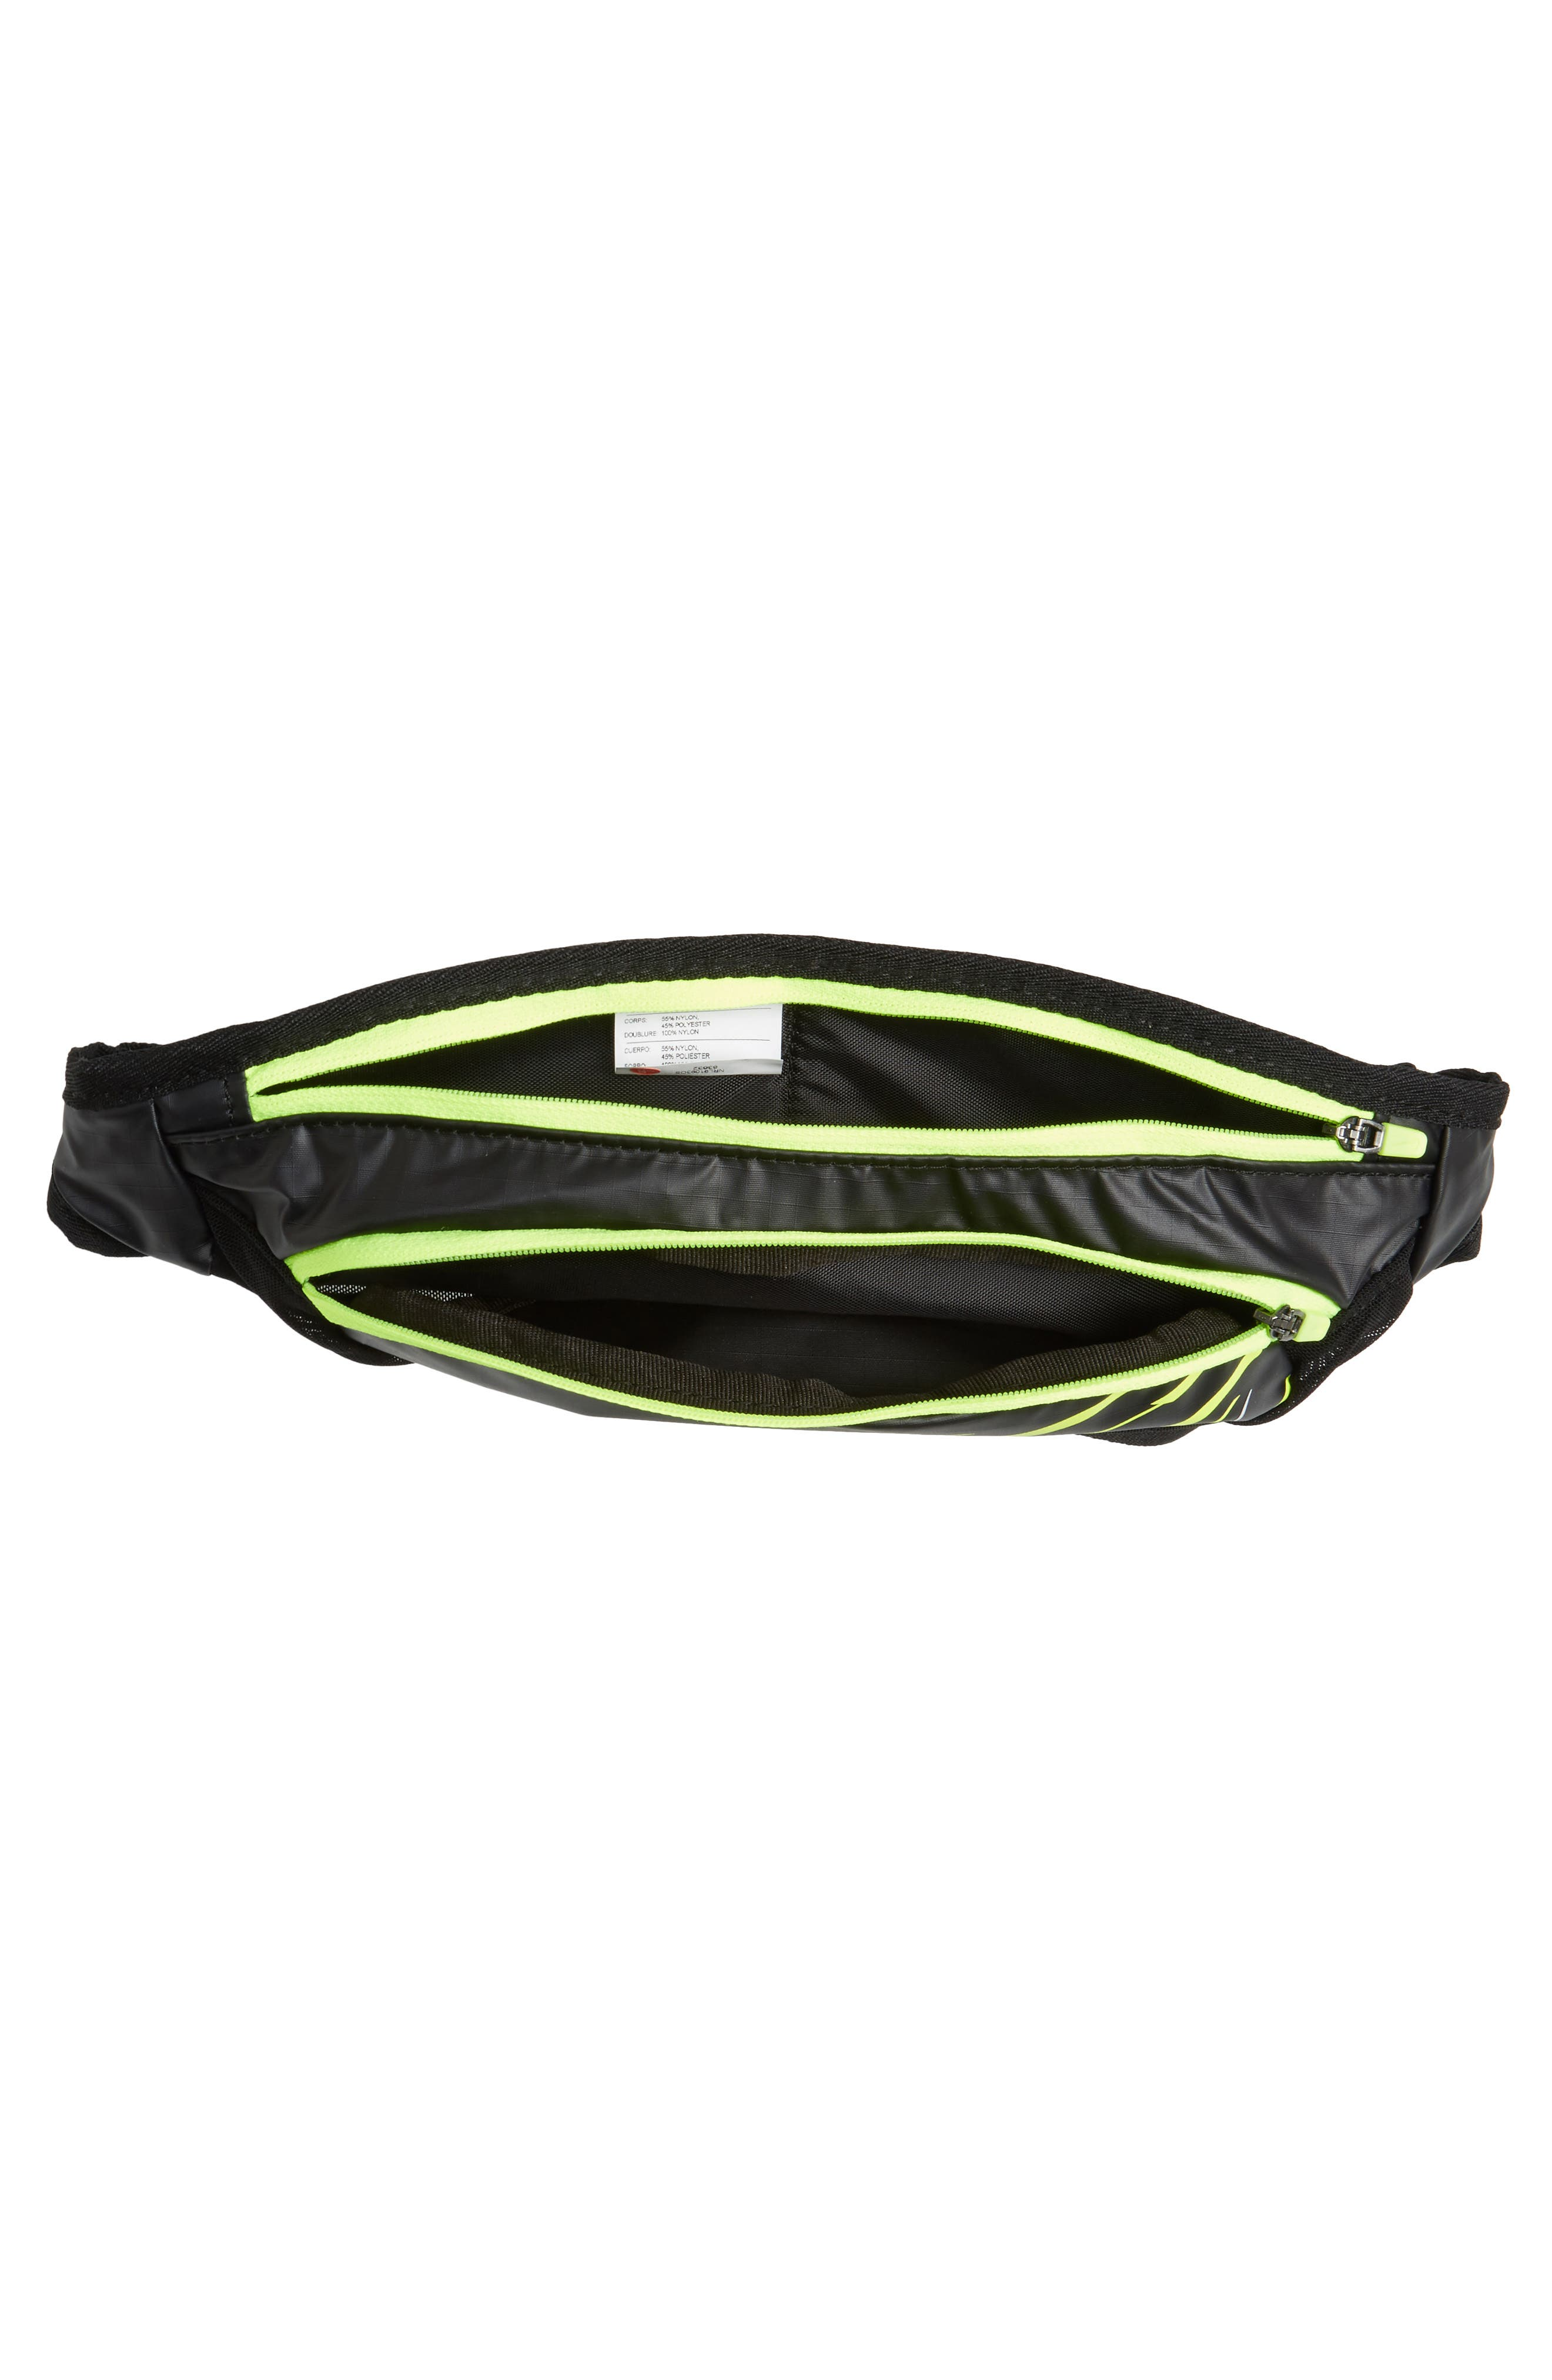 Large Capacity Hip Pack,                             Alternate thumbnail 4, color,                             019